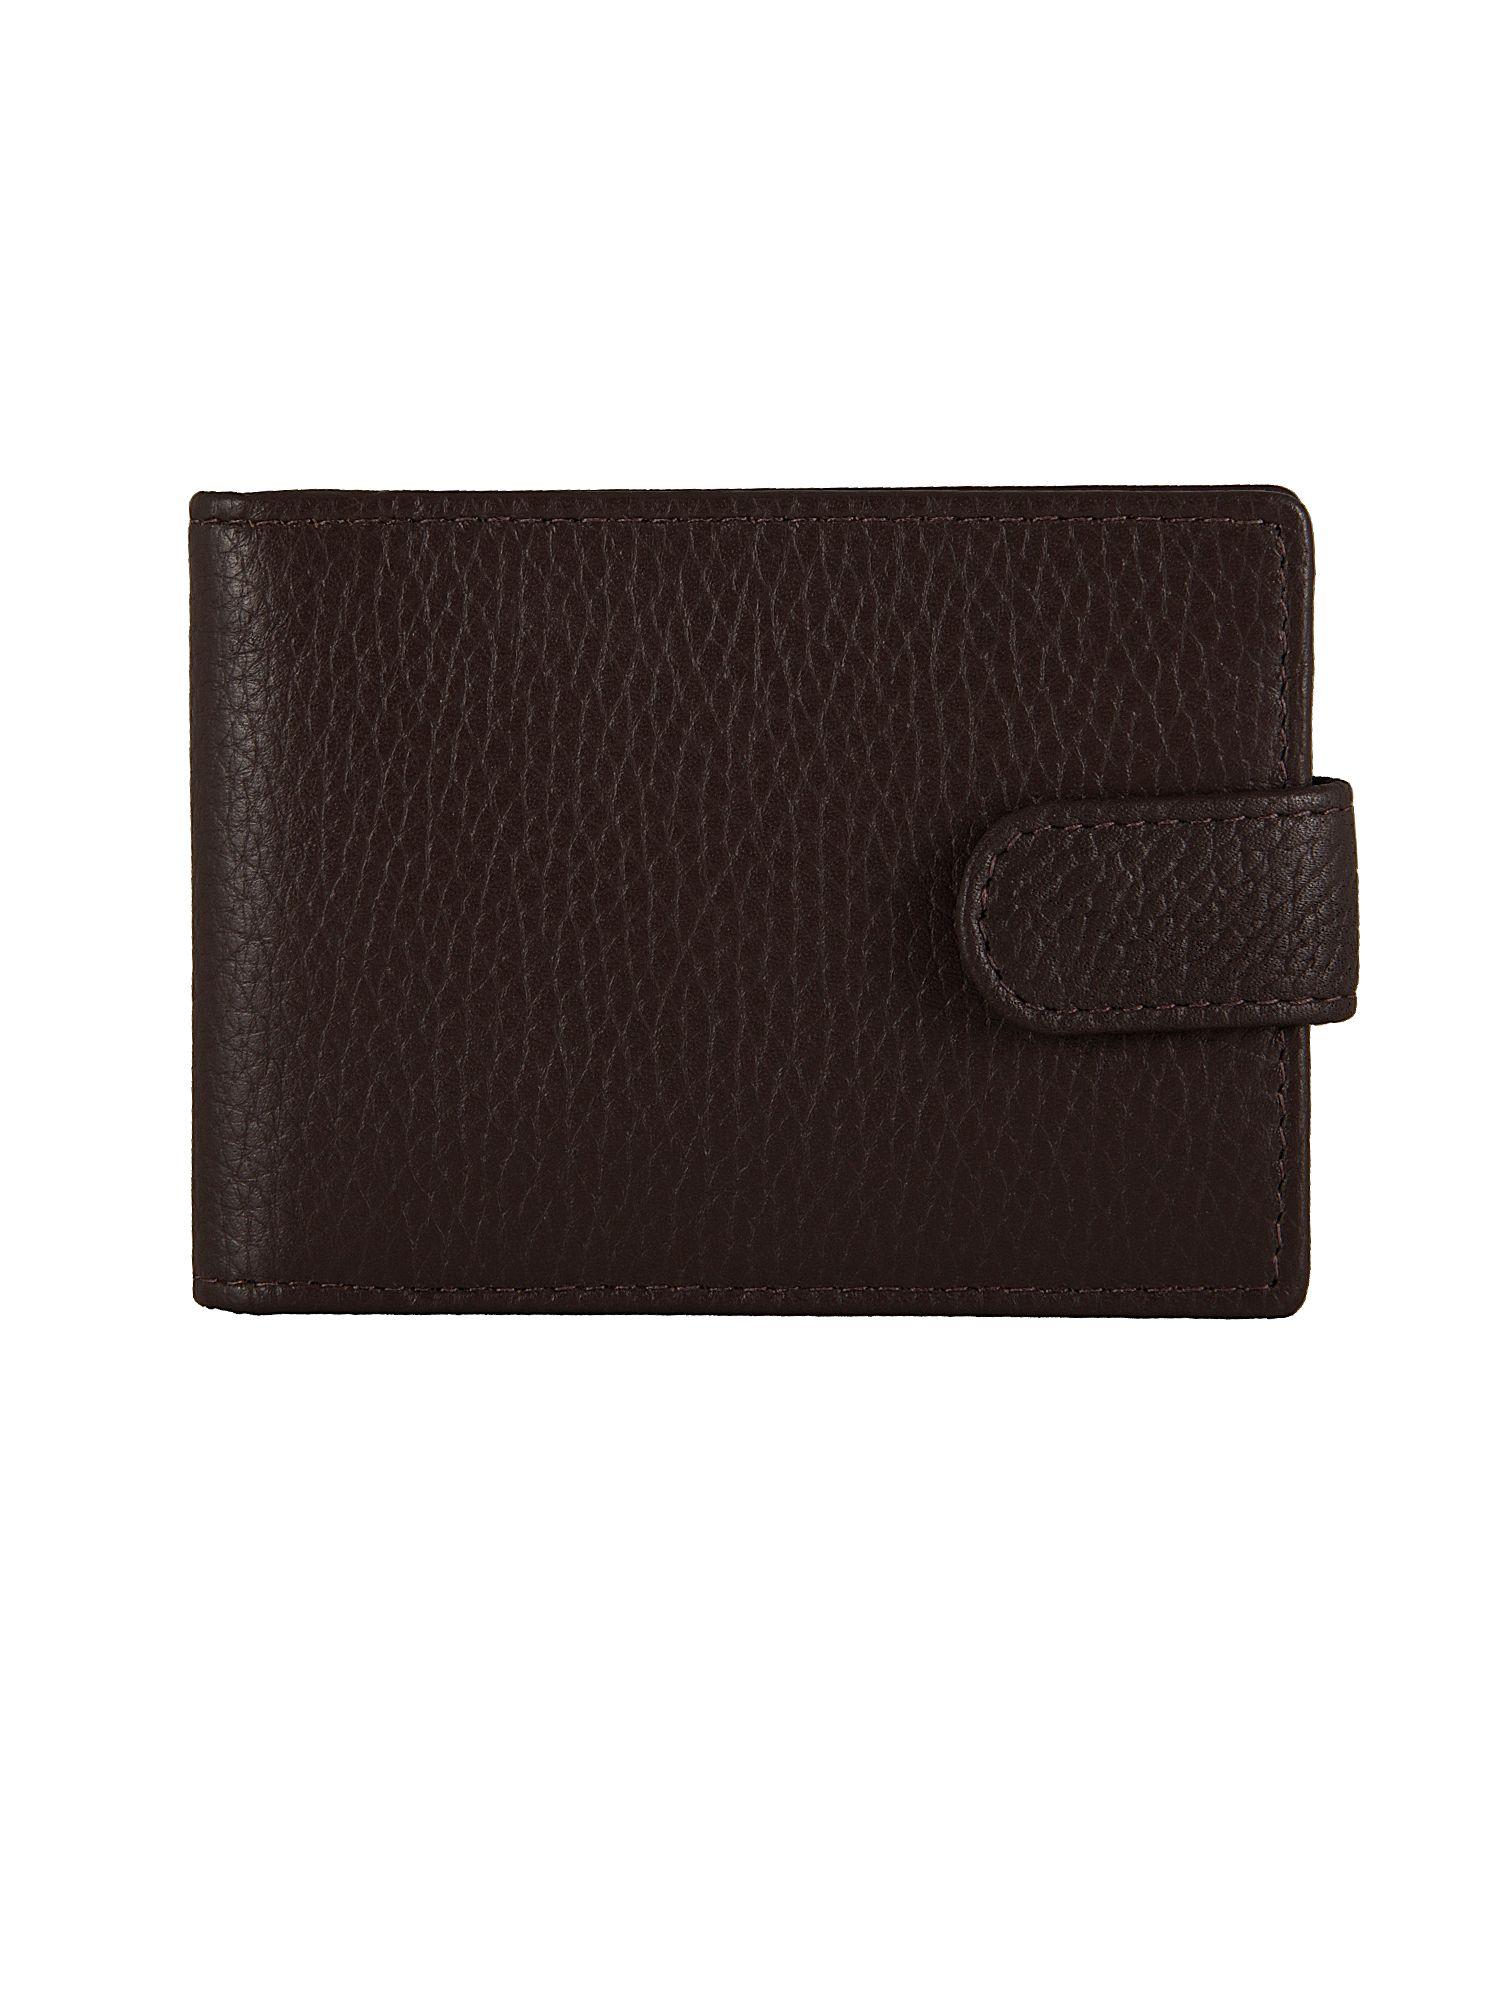 Dents Mens Rfid Protected Credit Card Holder, Chocolate